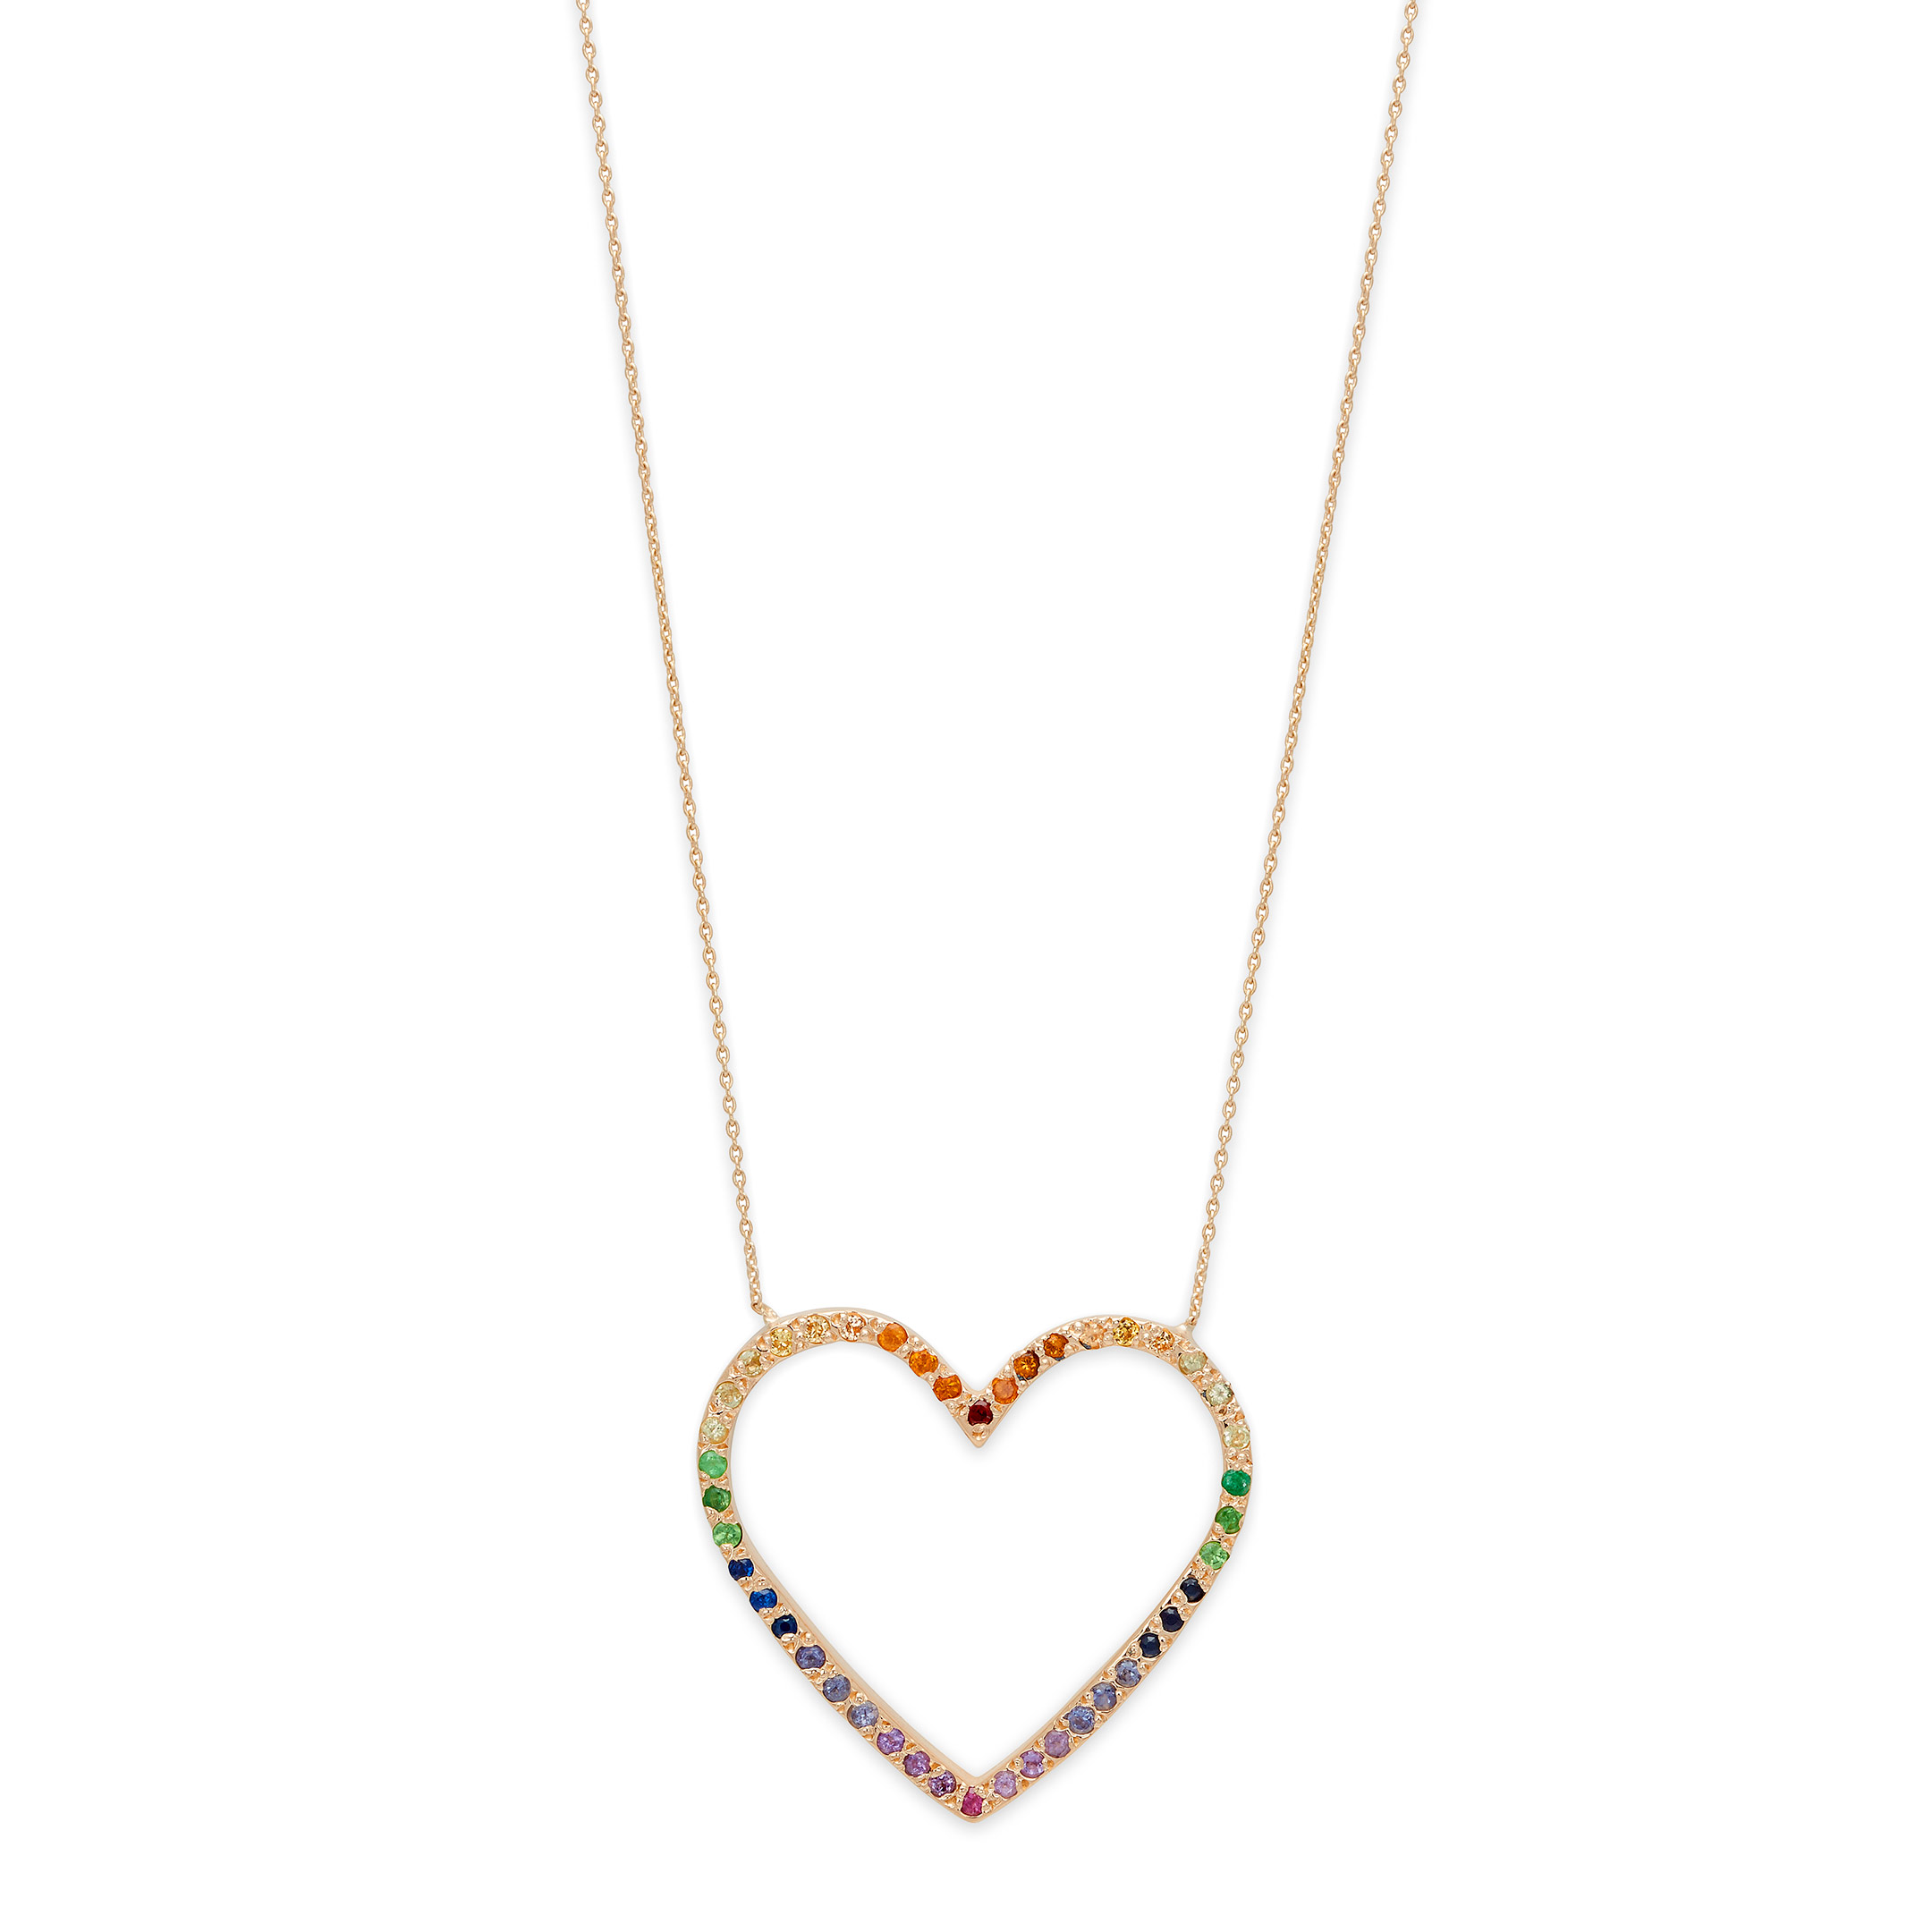 Yellow Gold Large Rainbow Open Heart Necklace, $1477 @elisasolomon.com (mention GGA for 10% off!)